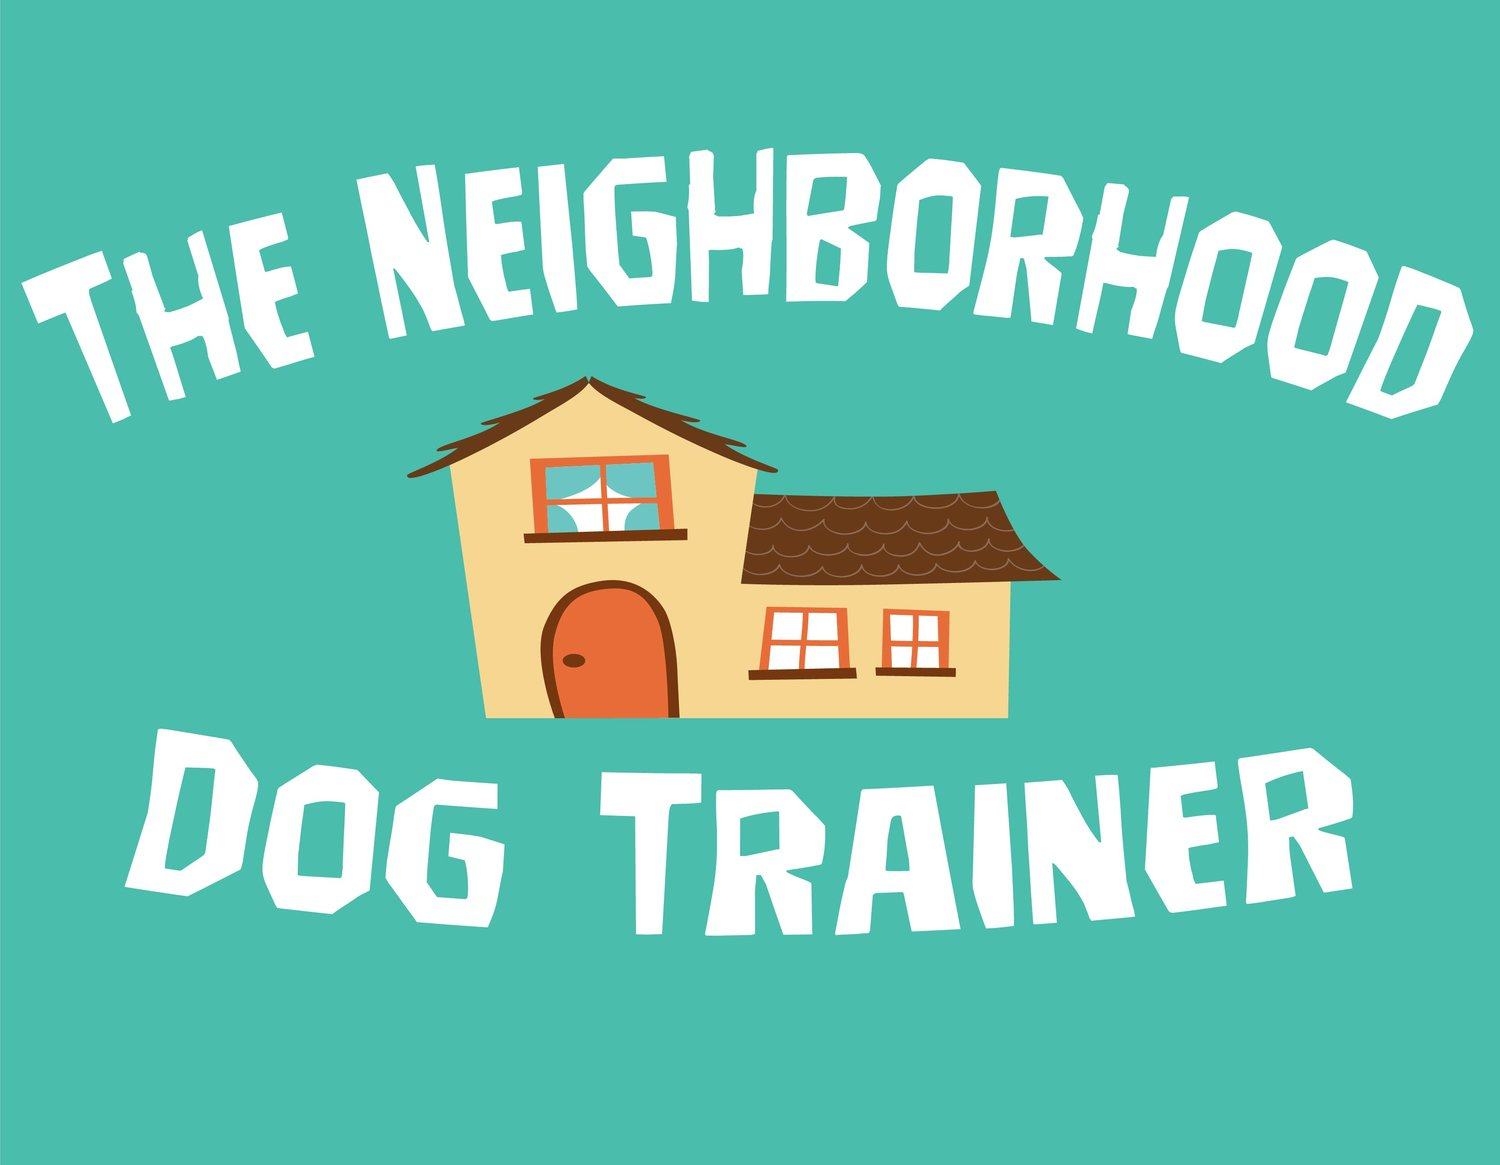 The Neighborhood Dog Trainer Show